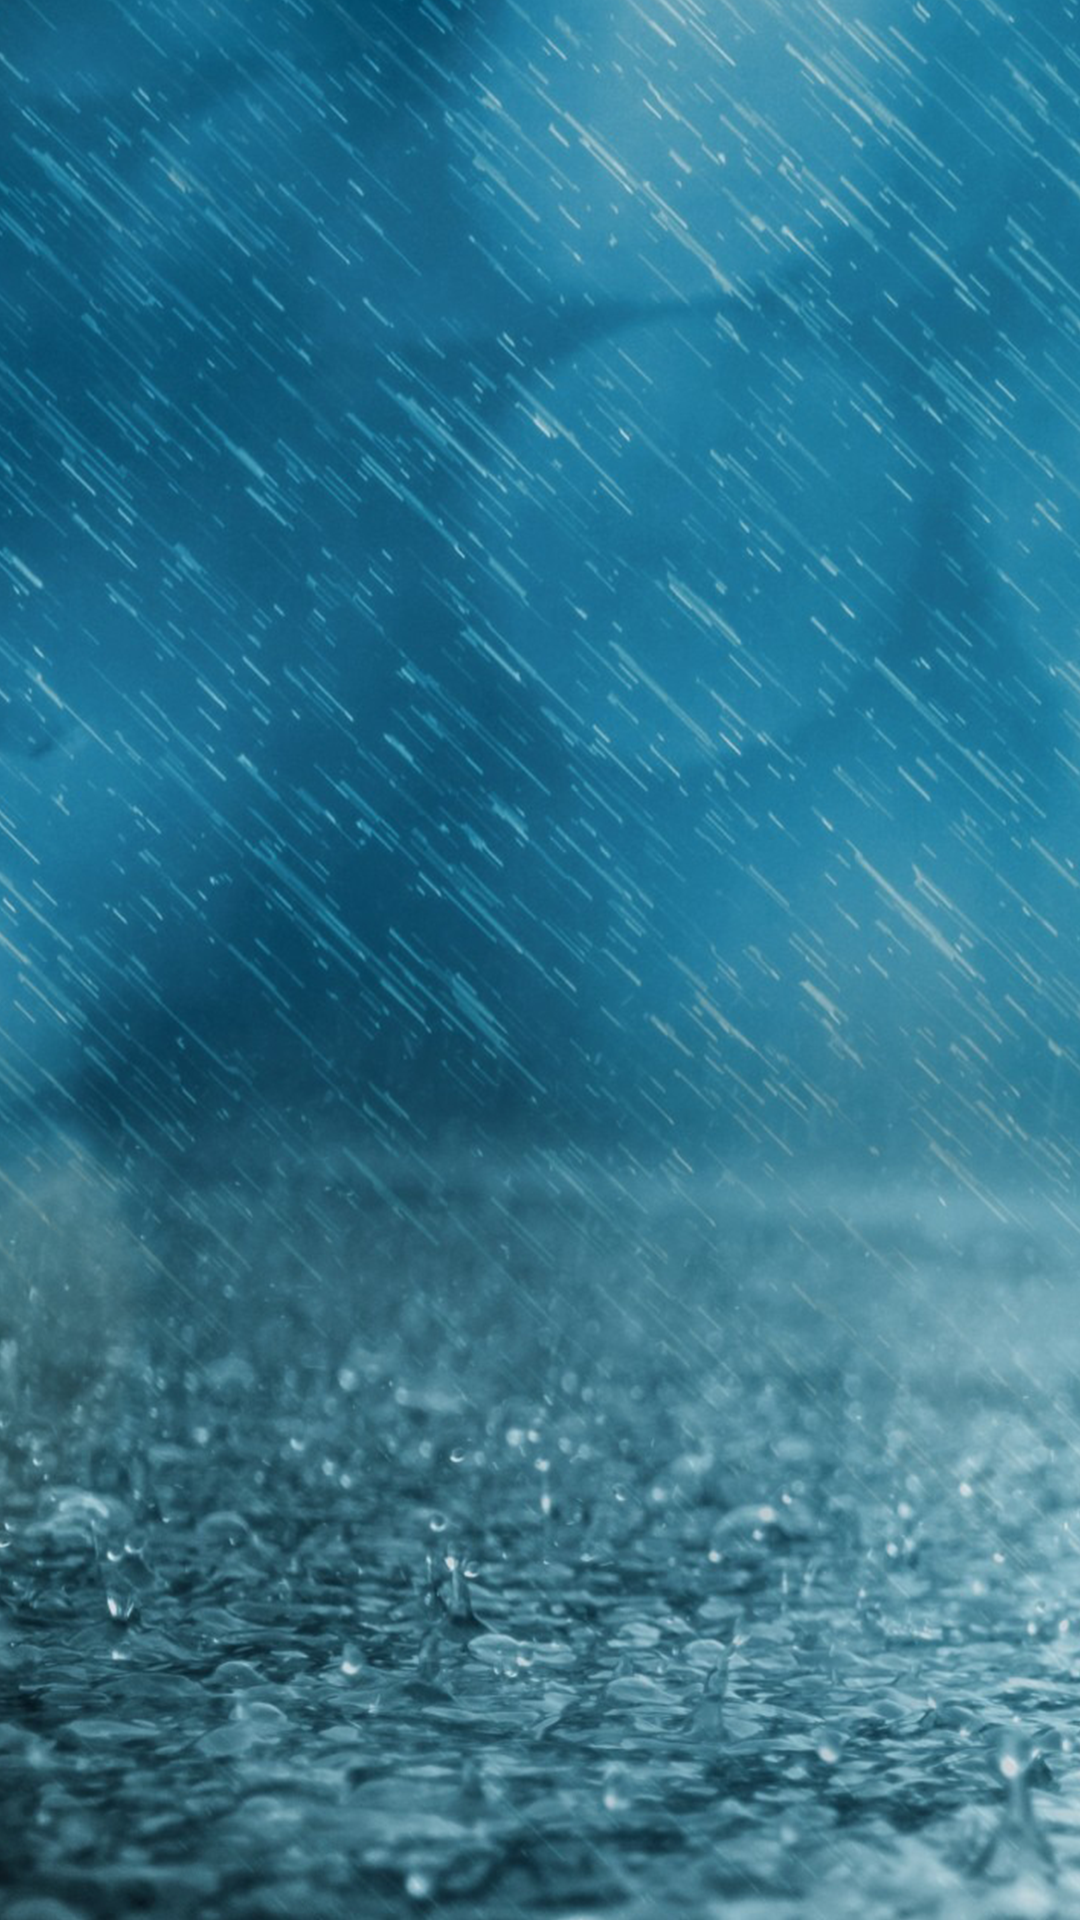 Ultra Hd Blue Rain Wallpaper For Your Mobile Phone 0333